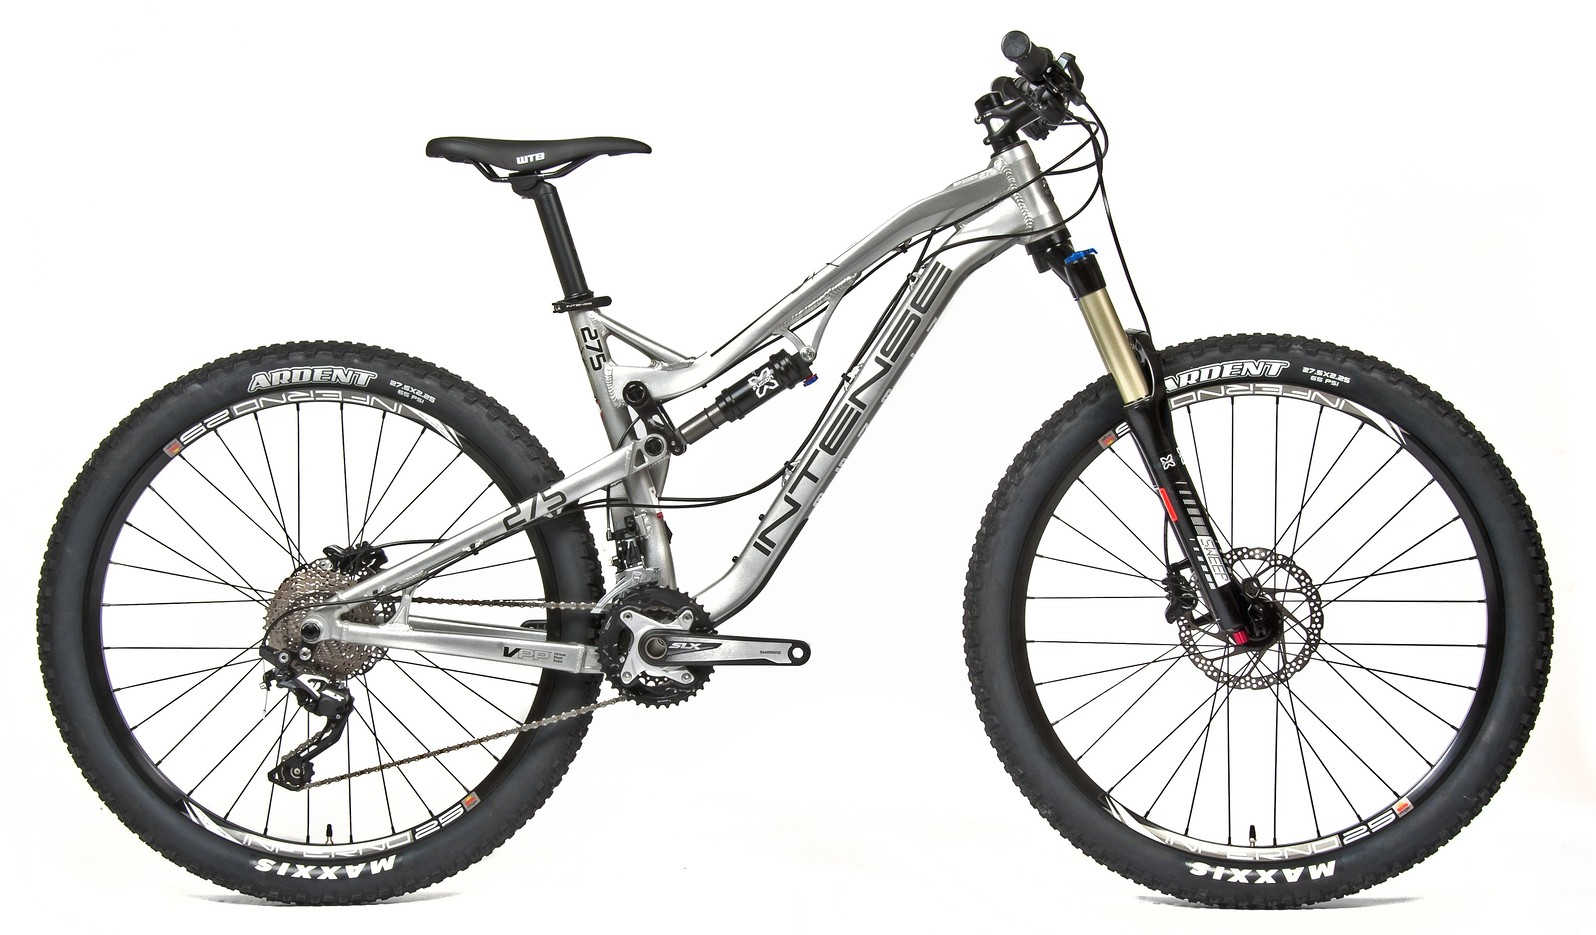 2015 Intense Spider 275 Foundation